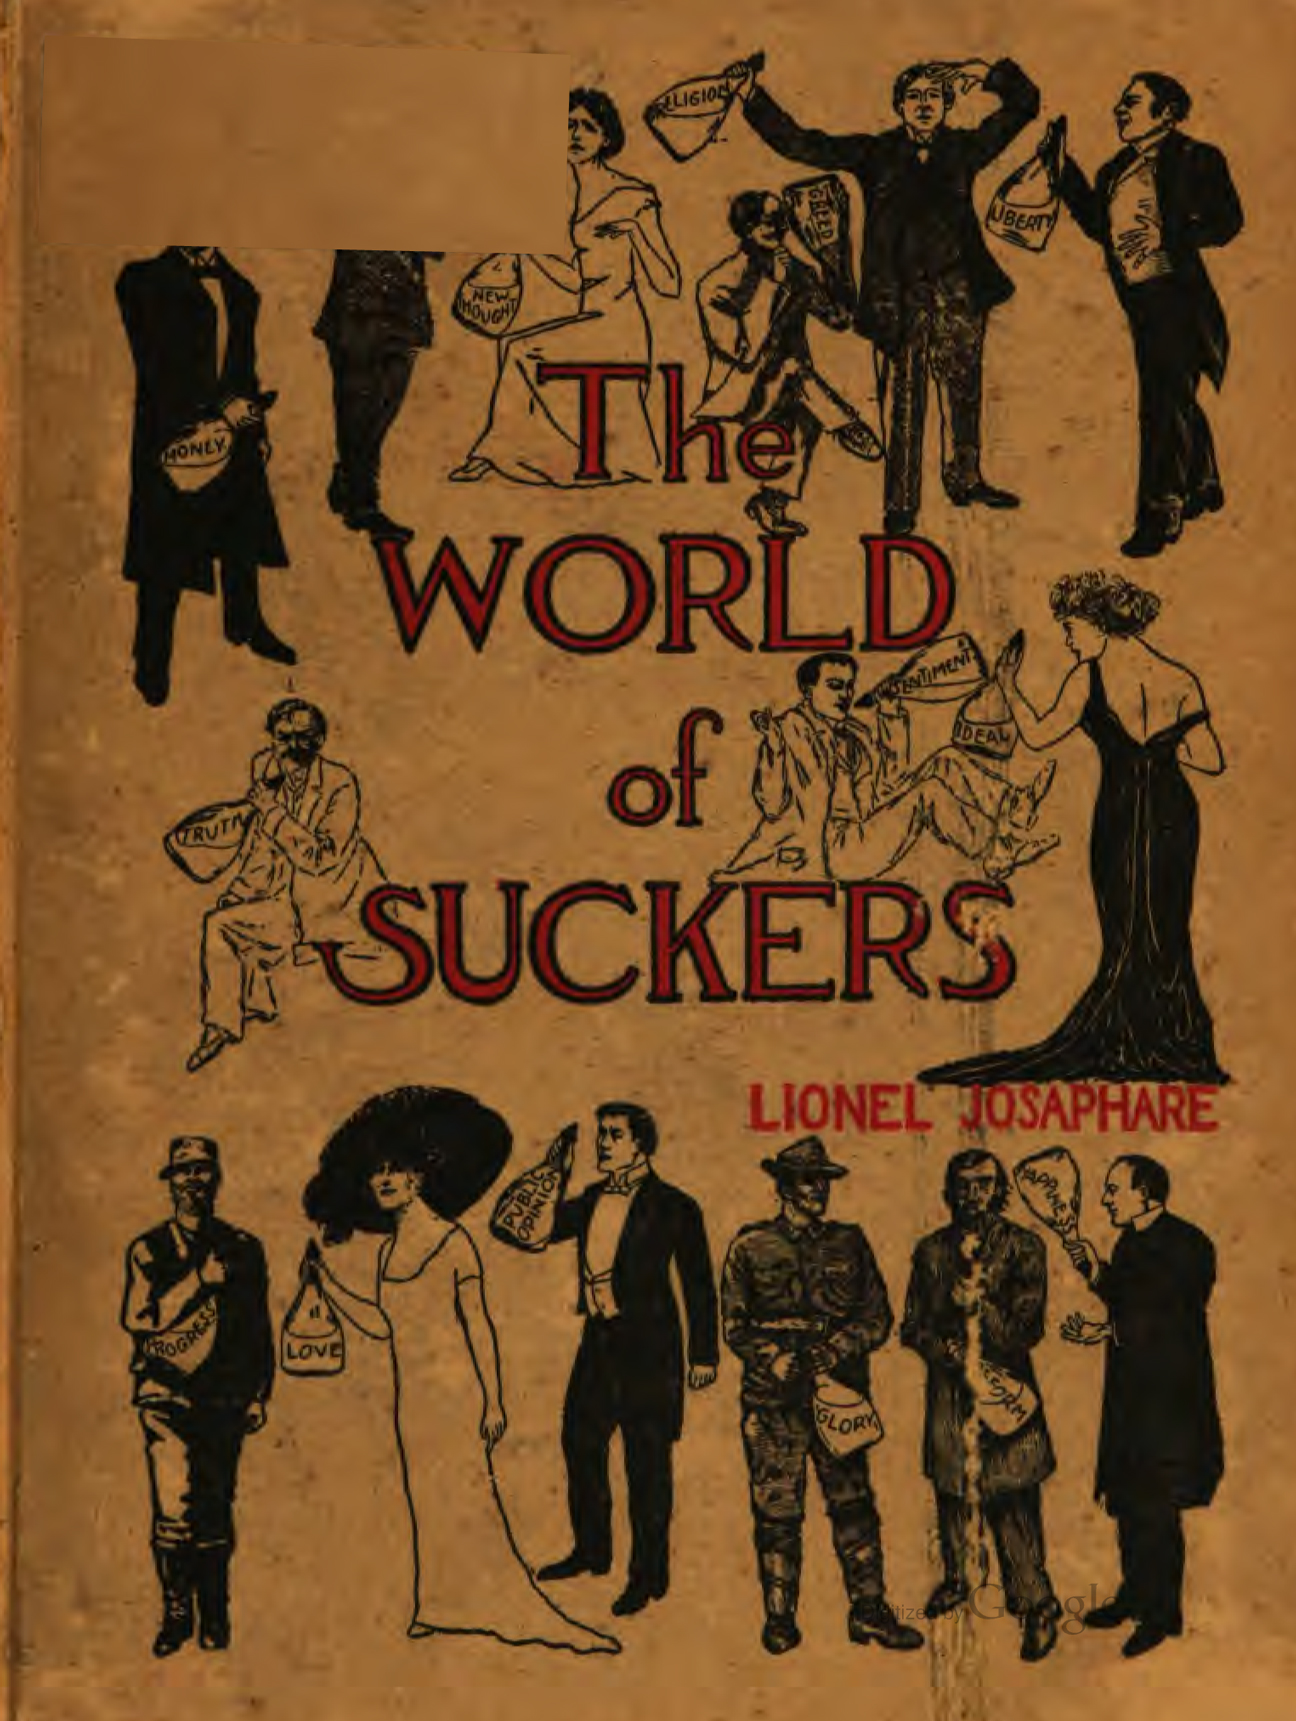 Cover of the World of Suckers by Lionel Josaphare (1909)